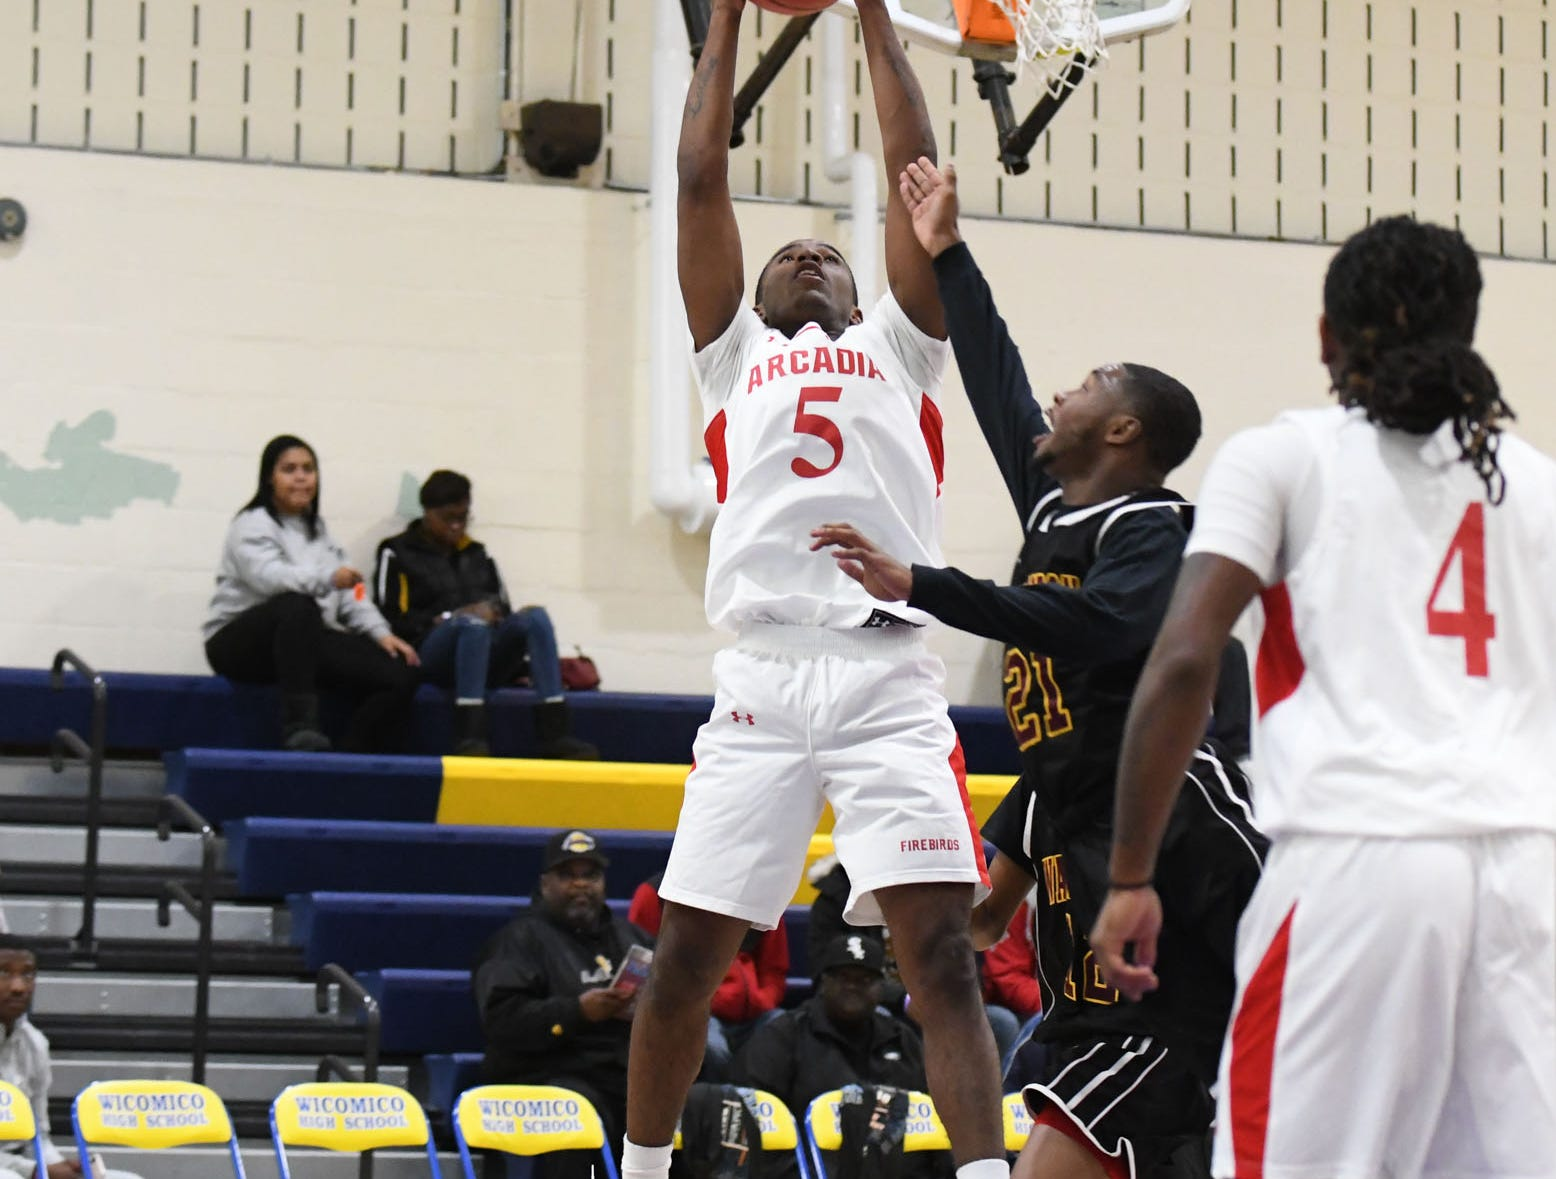 Arcadia's Lethon Williams with the rebound against Washington High School on Wednesday, Dec. 26, 2018 during the Governors Challenge in Salisbury, Md.